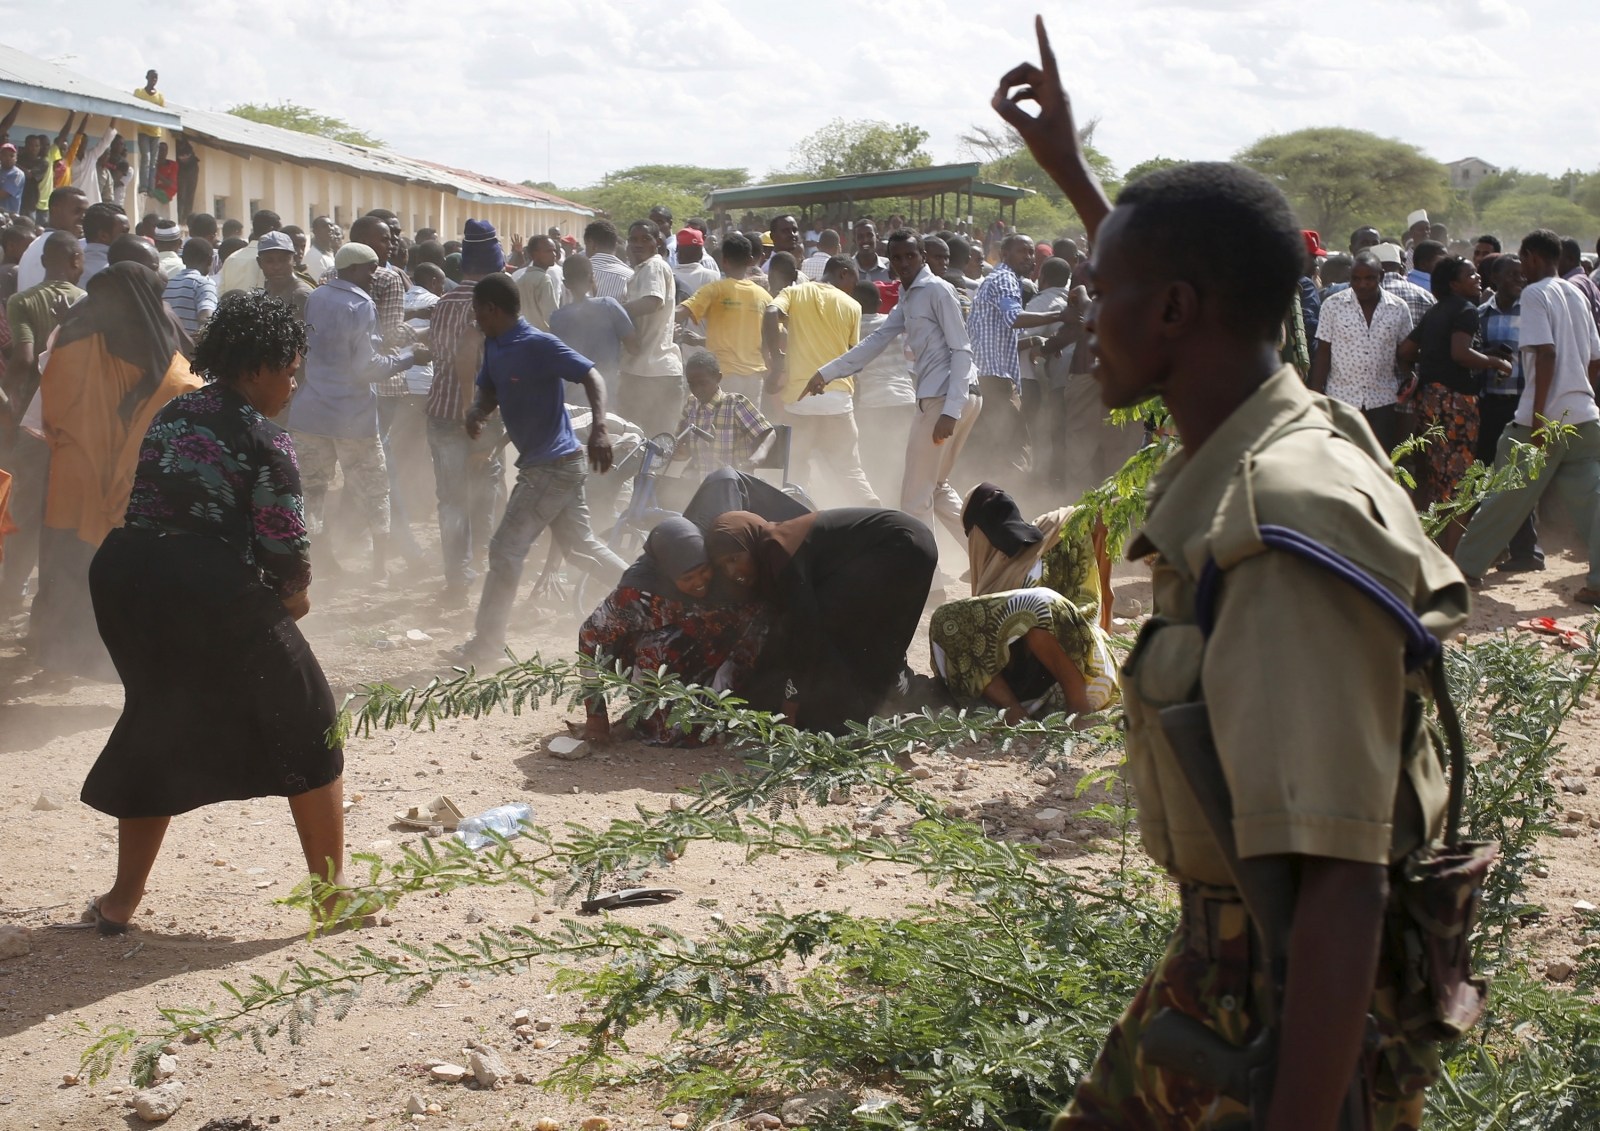 Kenya Garissa University Siege: Security Forces Parade